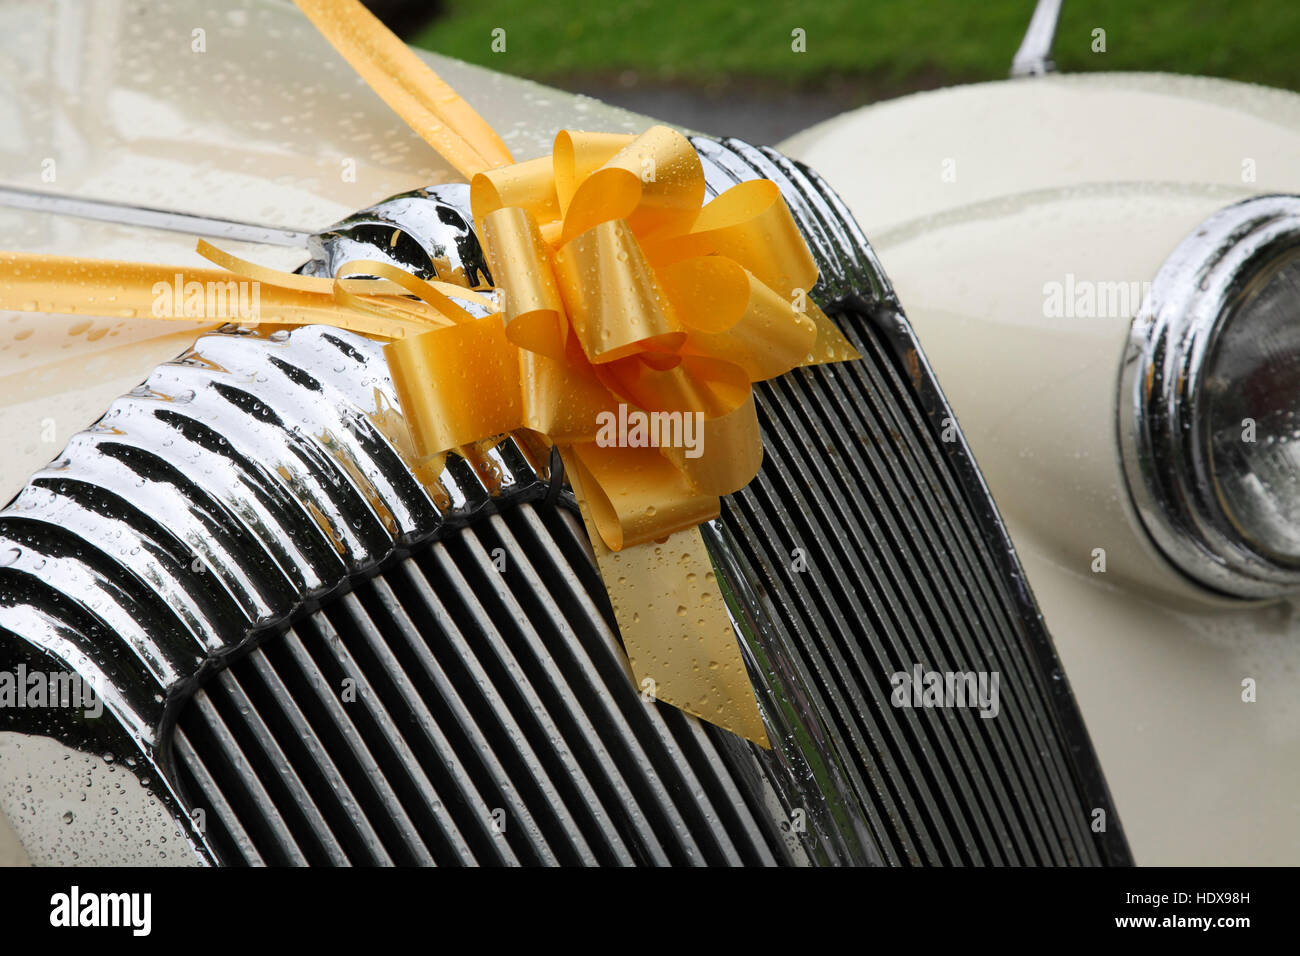 Vintage wedding car with a yellow ribbon tied in a bow on the radiator grill, and covered in rain spots. Stock Photo